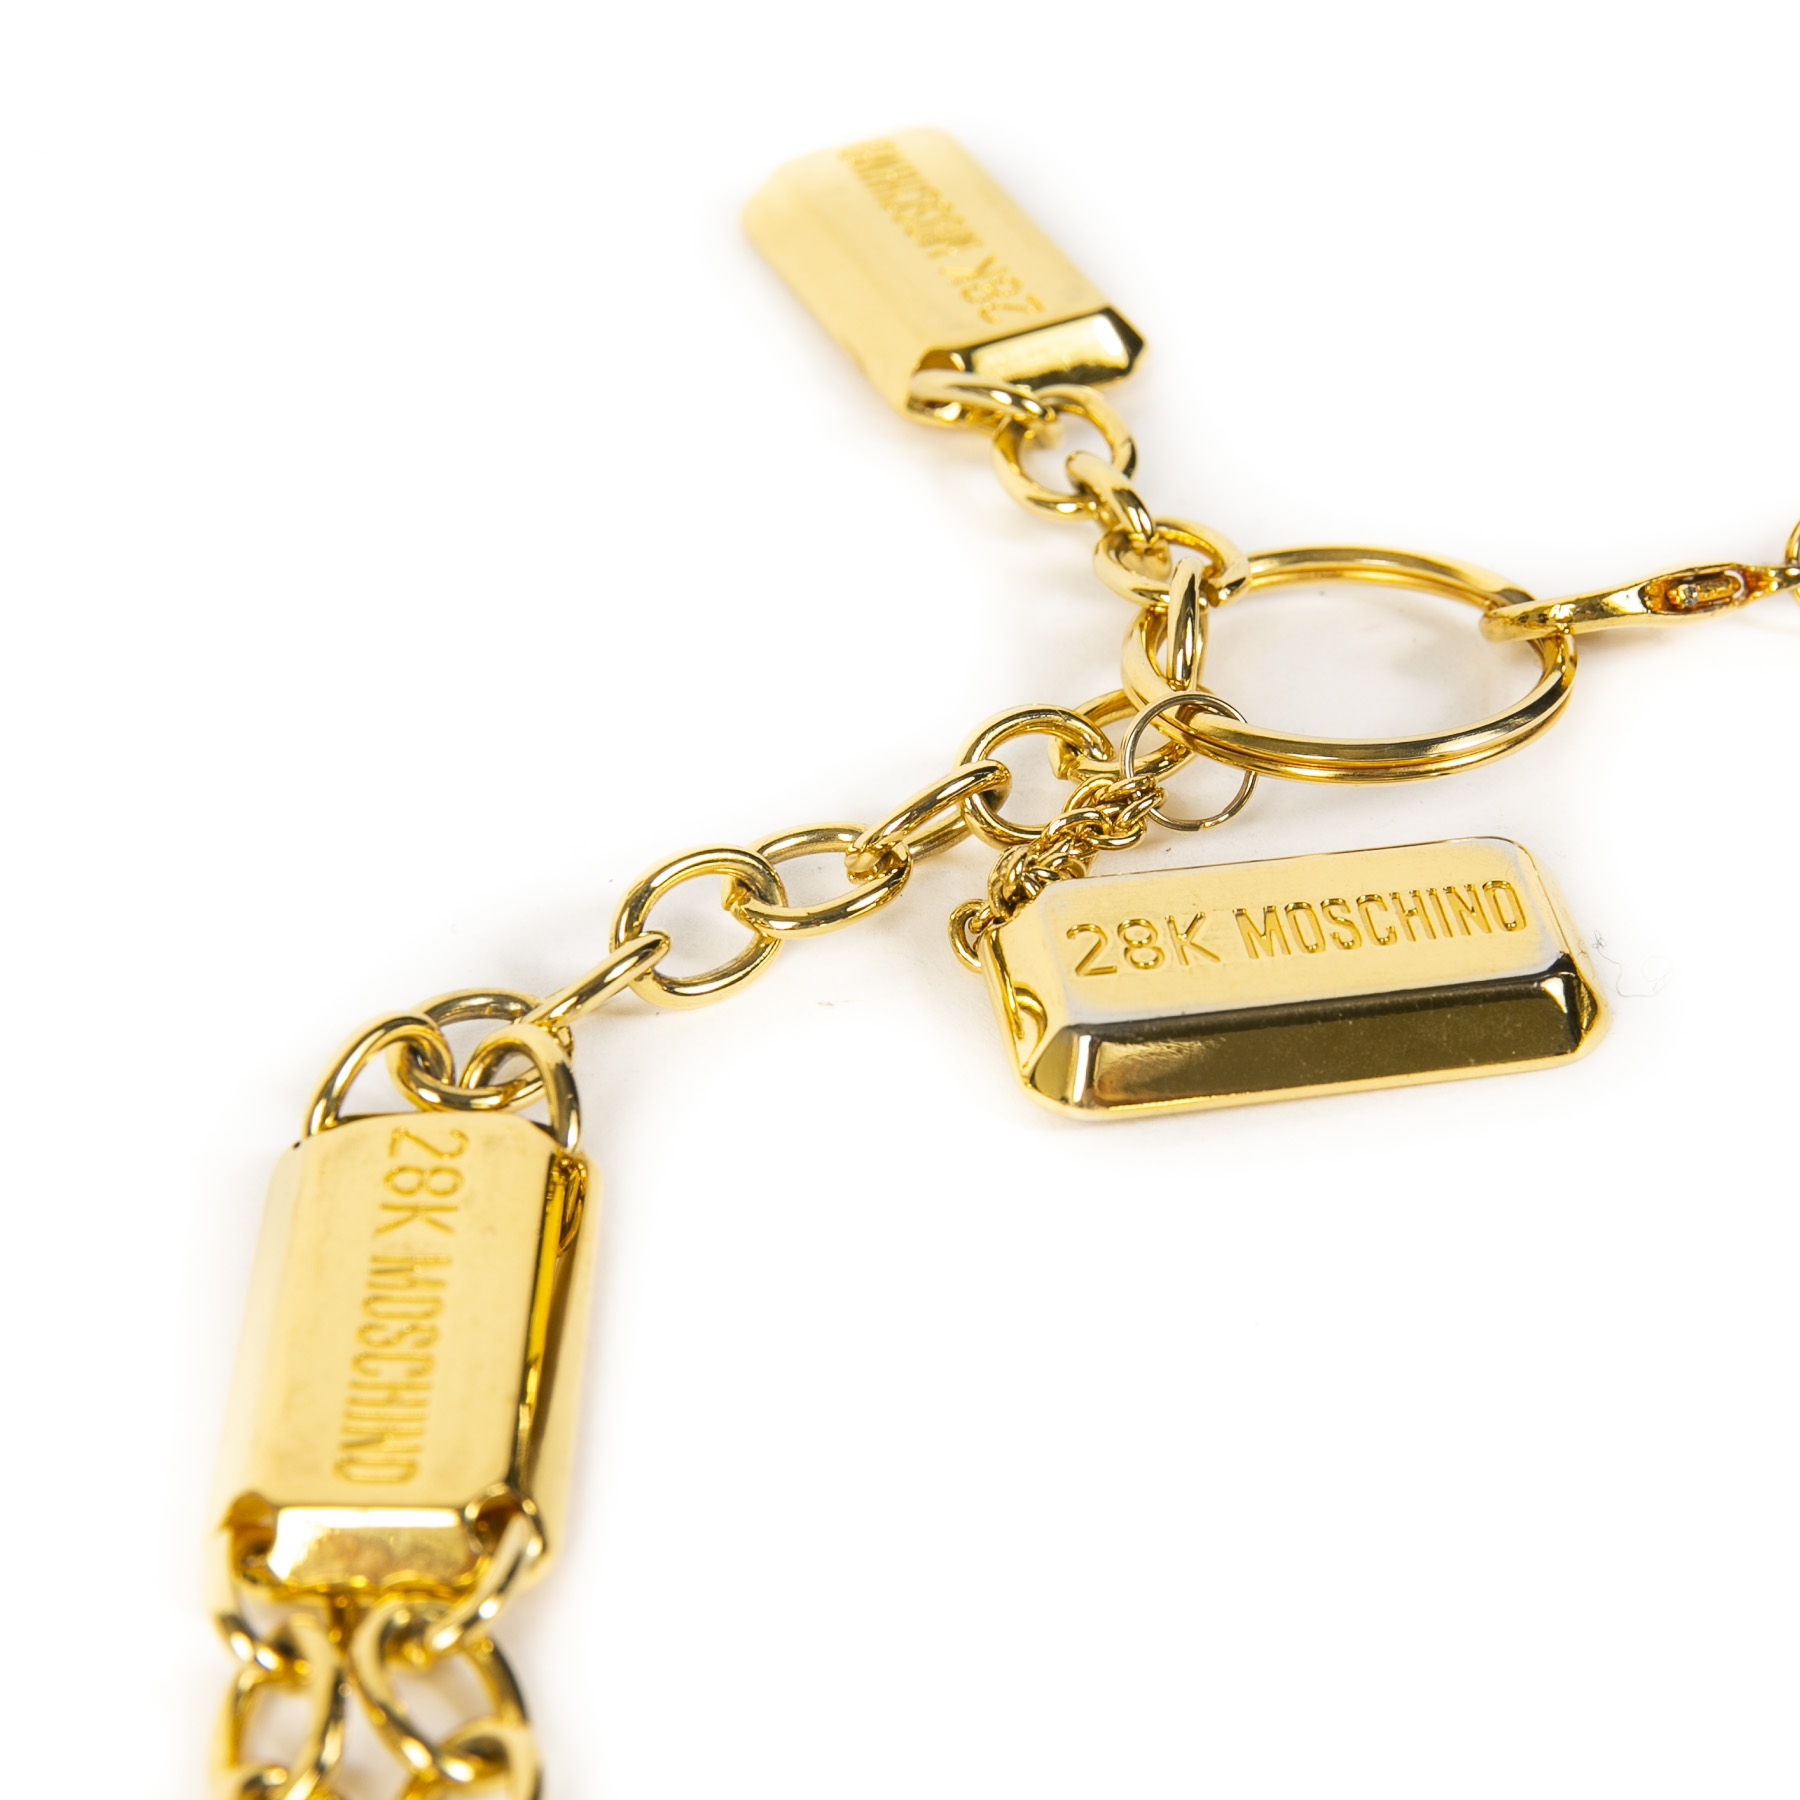 Authentieke tweedehands vintage Moschino Gold Bar Chain Belt koop online webshop LabelLOV